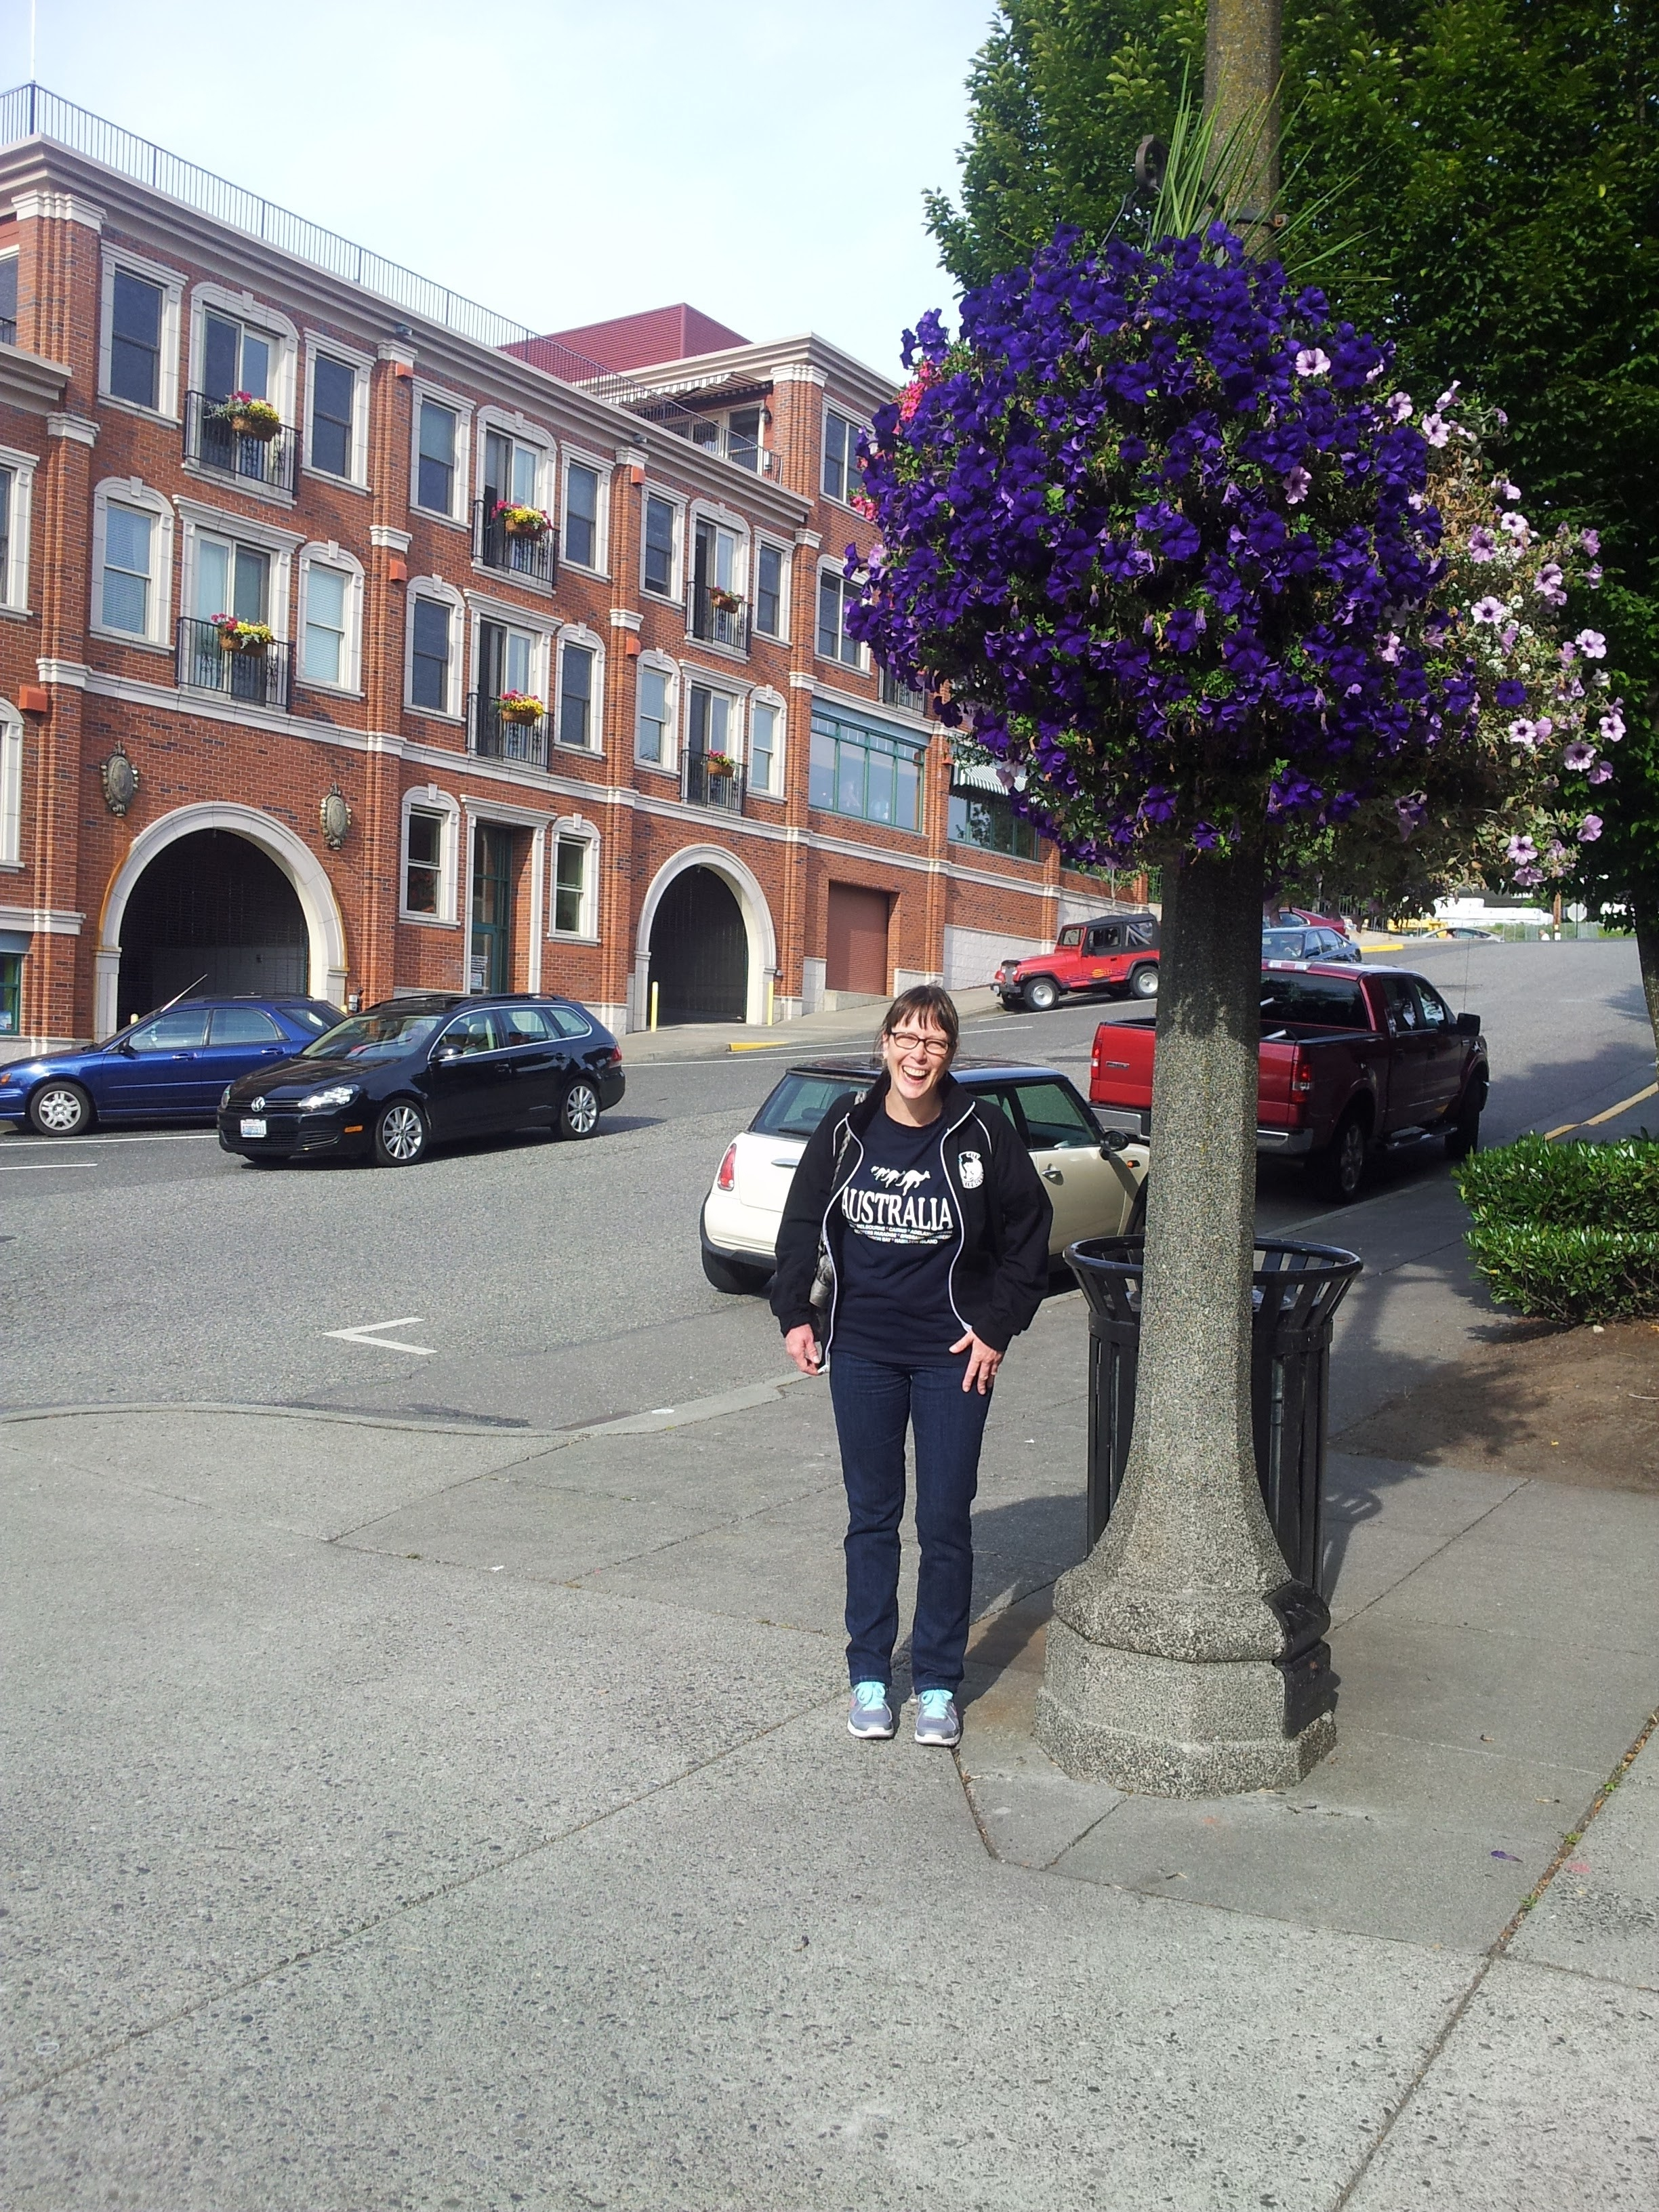 On a visit to one of our favorite cities, Bellingham, WA.